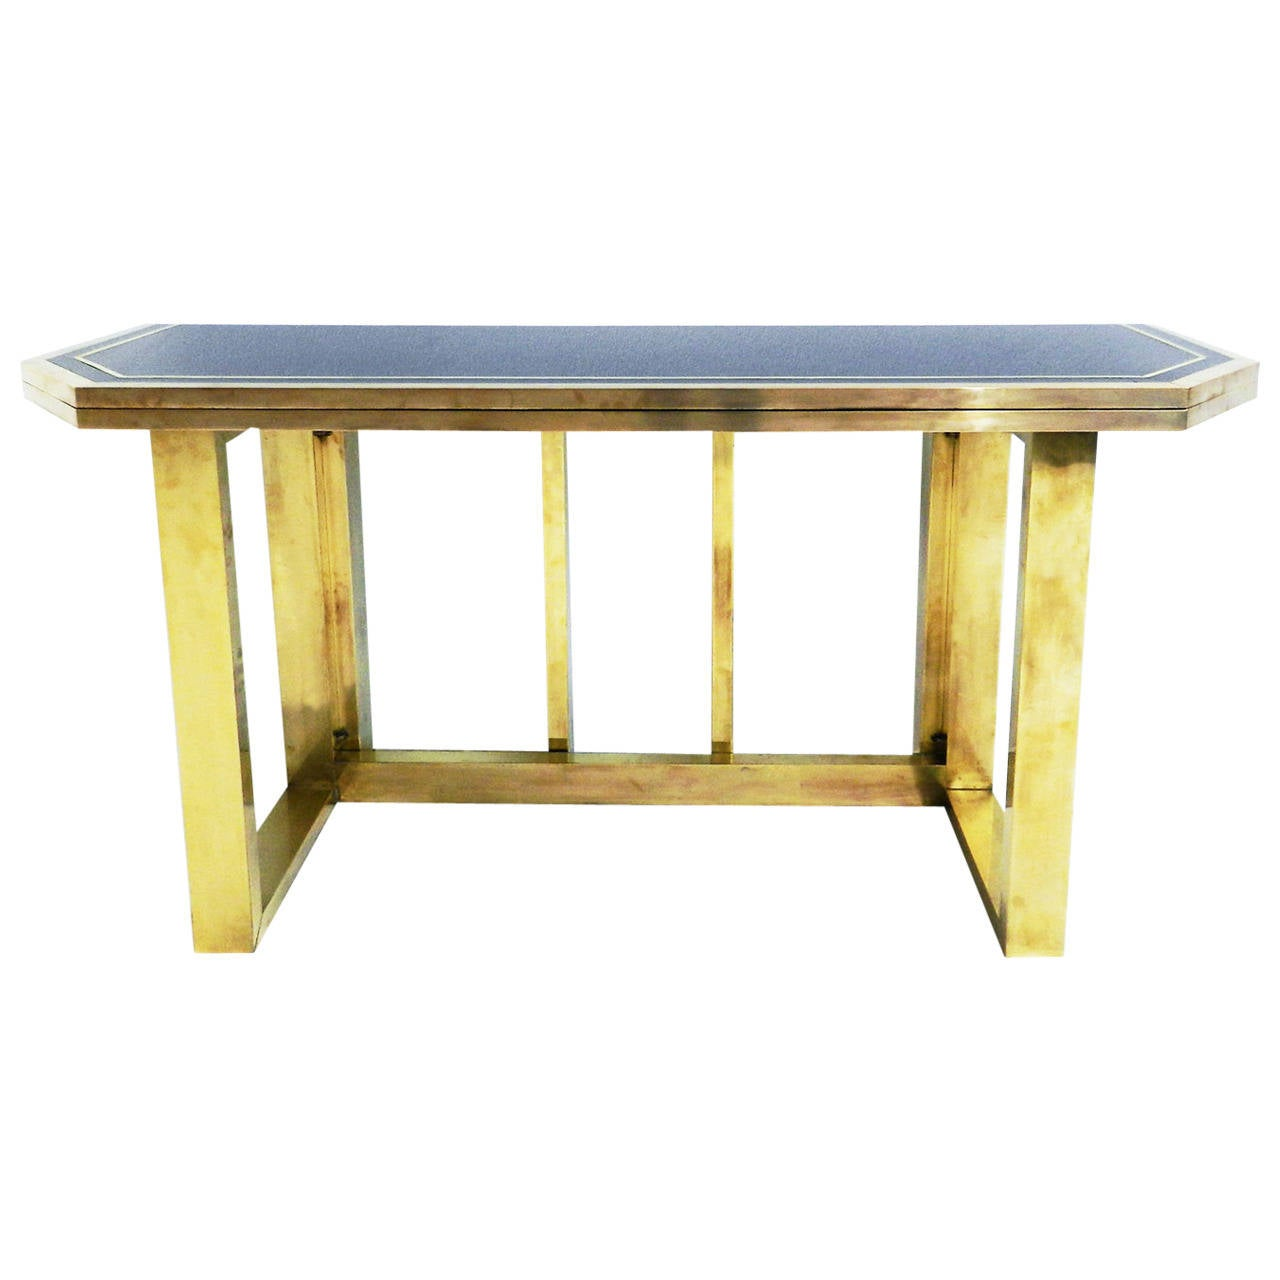 console or pliable table in the style of tommaso barbi at